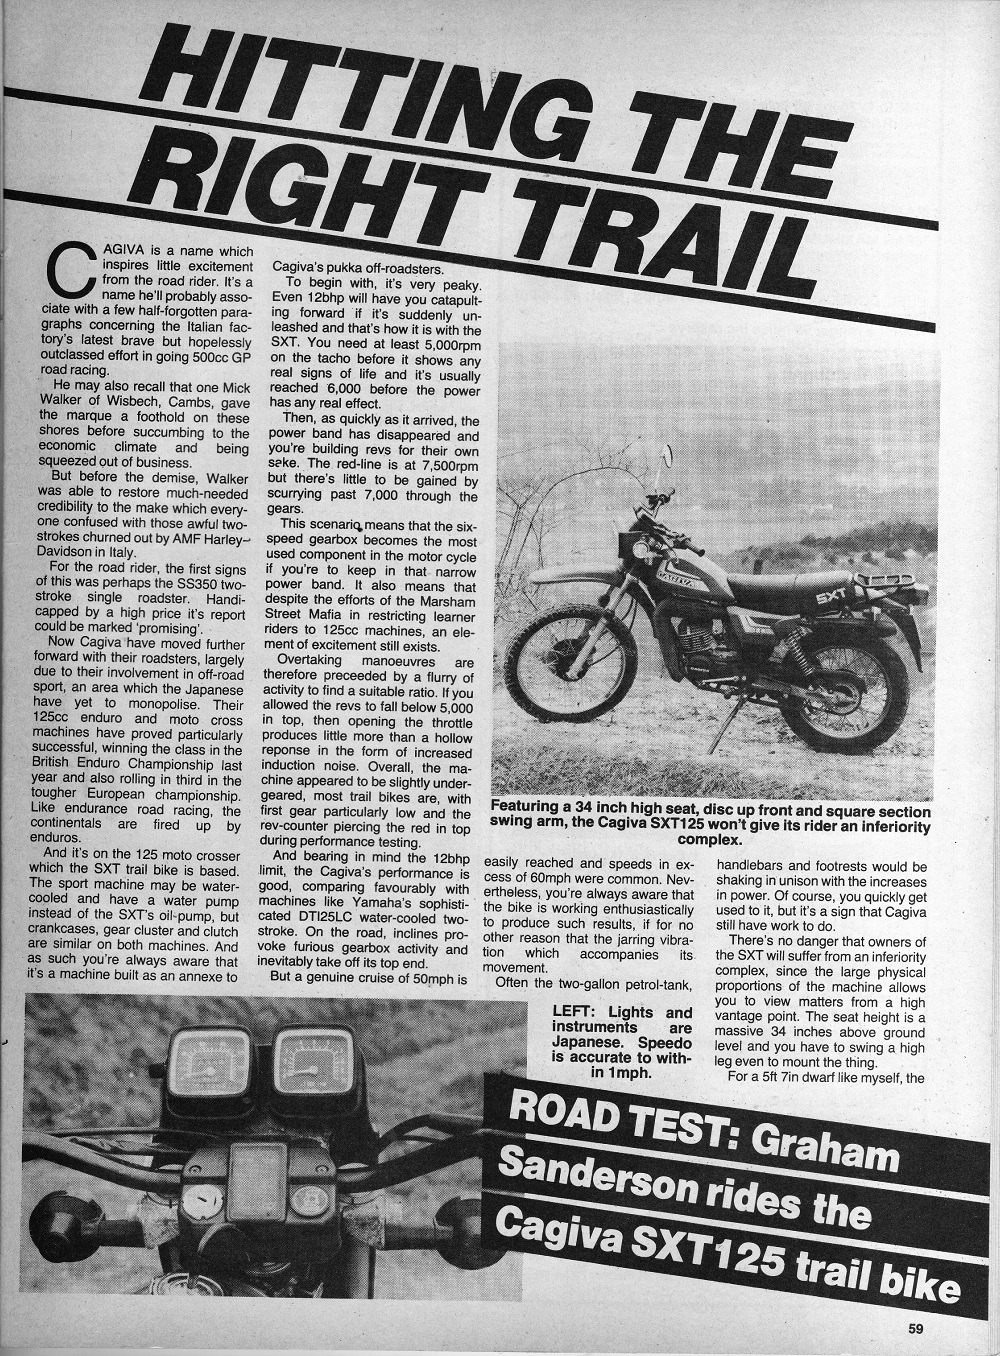 1983 Cagiva STX125 road test.2.jpg